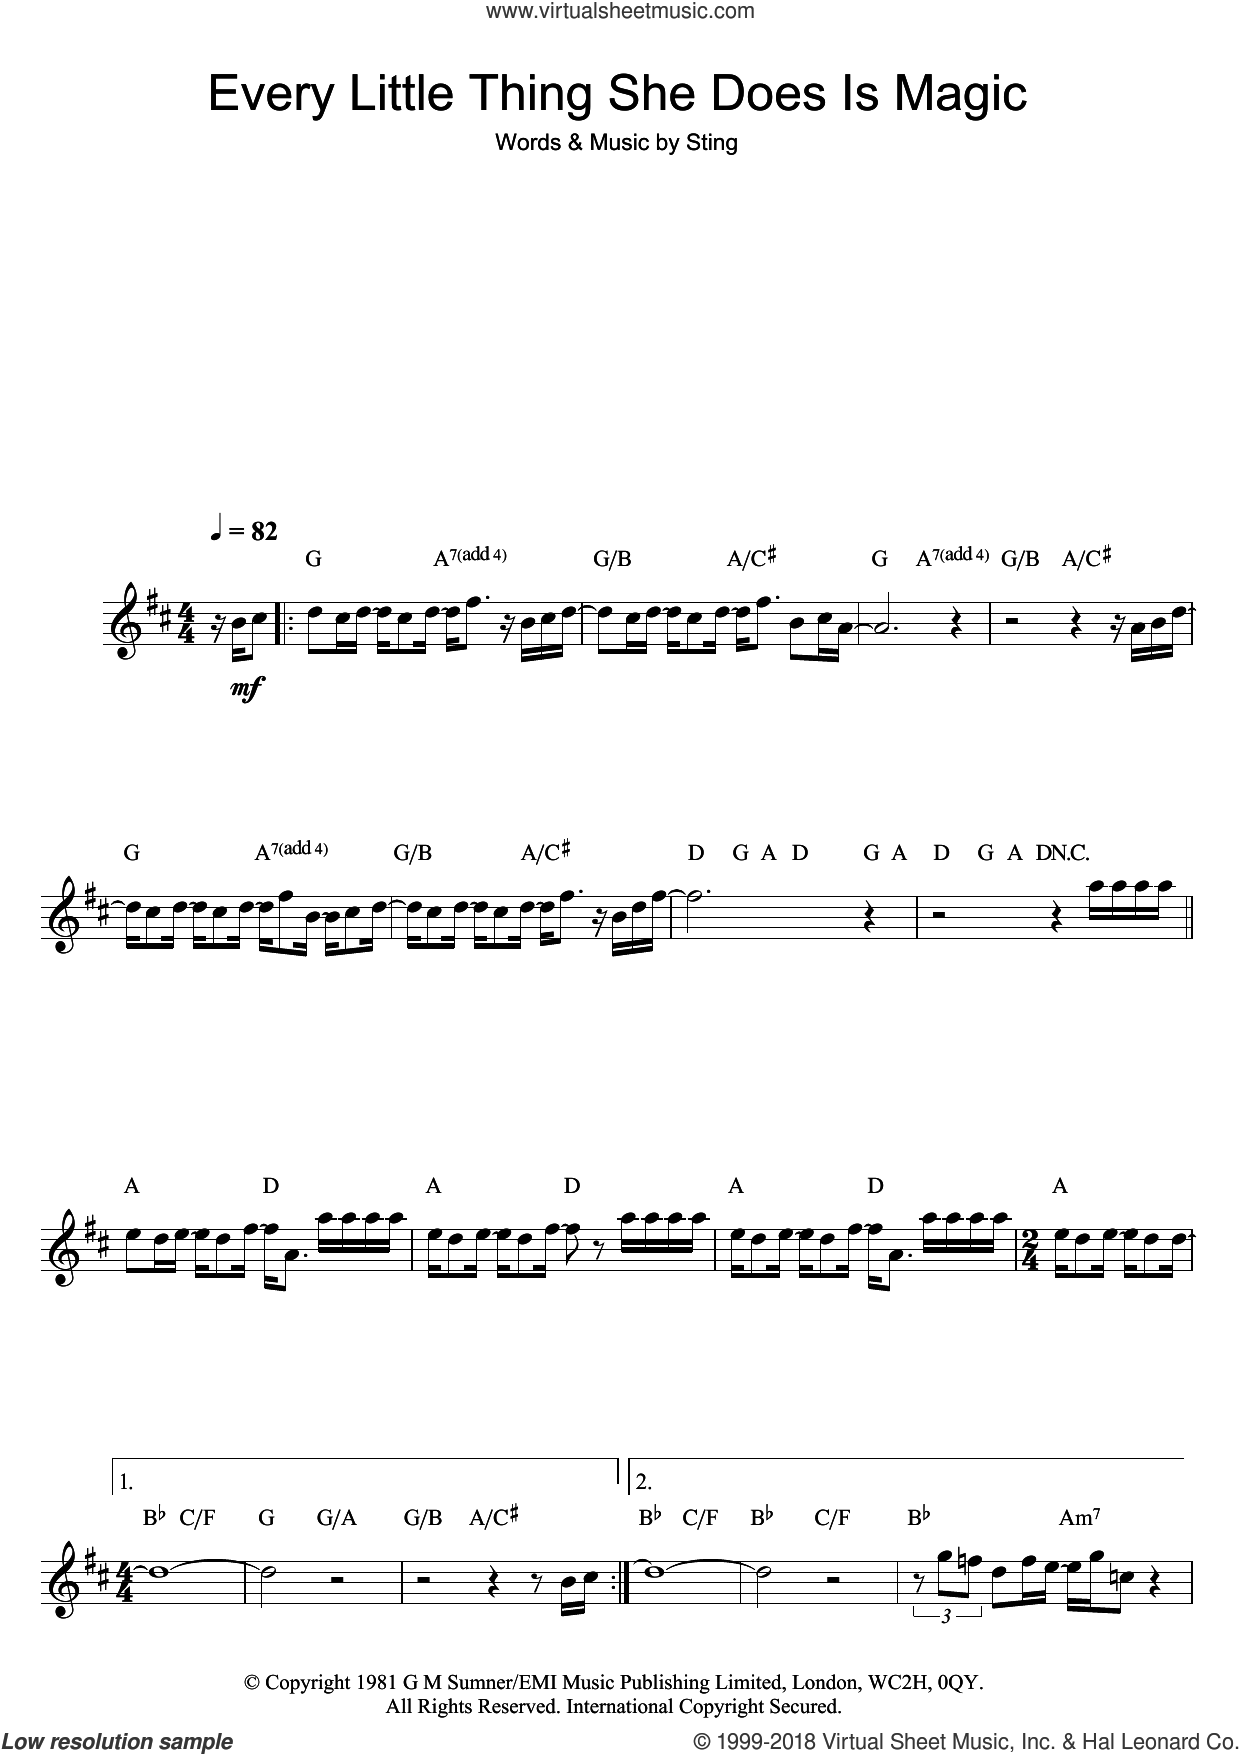 Every Little Thing She Does Is Magic sheet music for flute solo by Sting